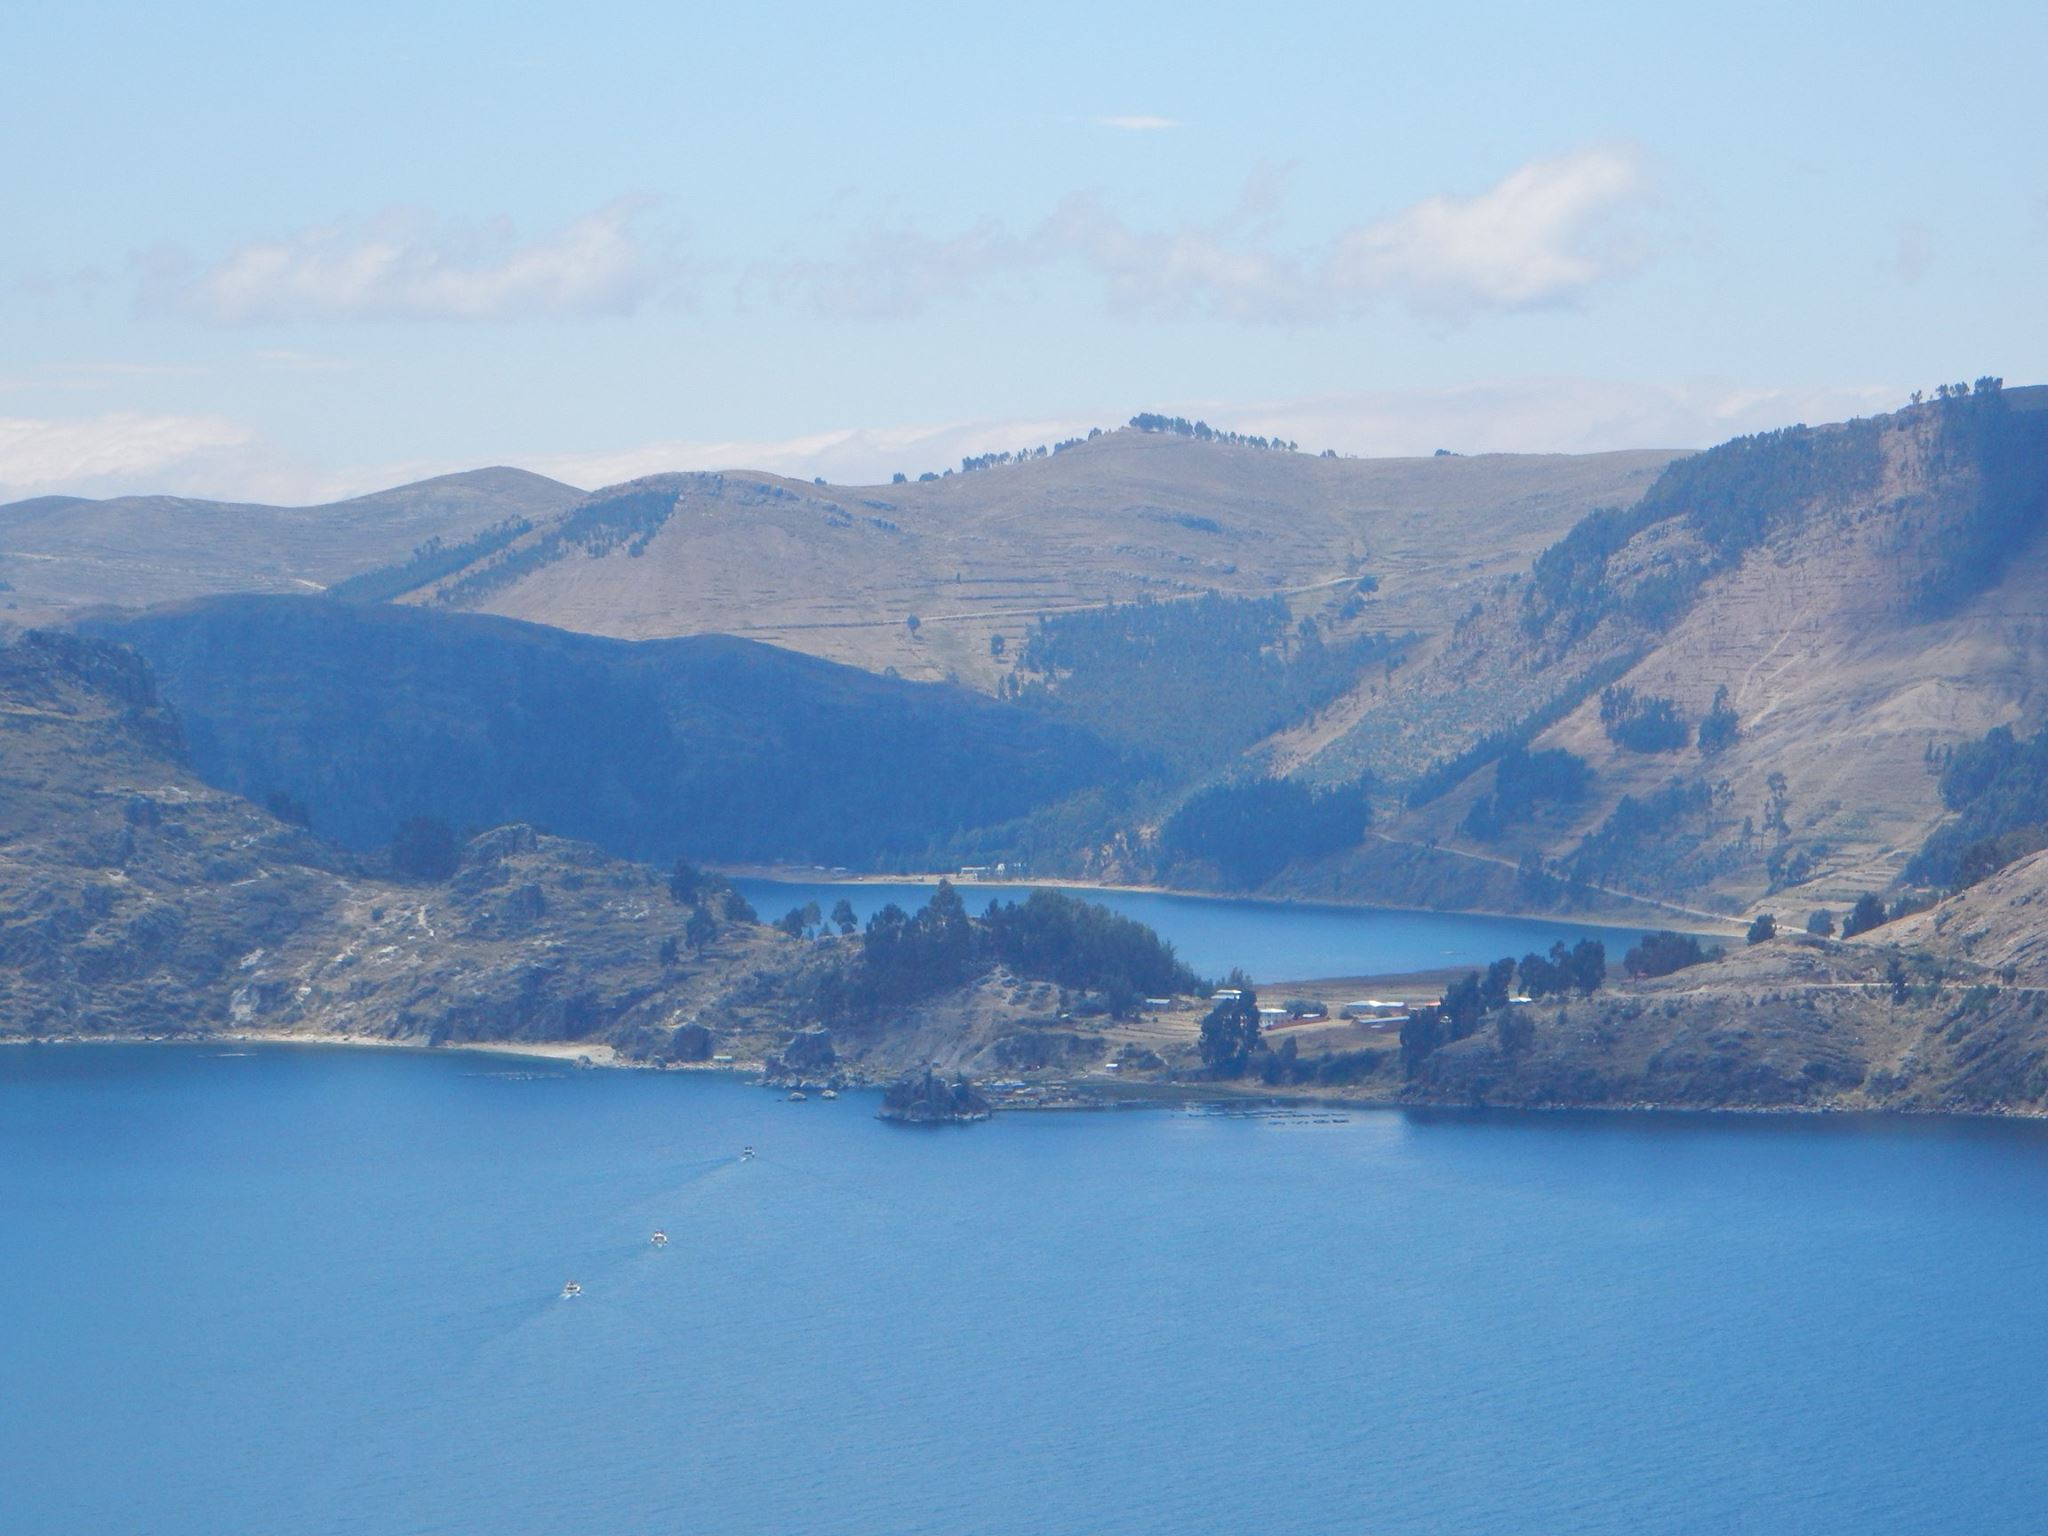 Views of Lake Titicaca from the hill climb